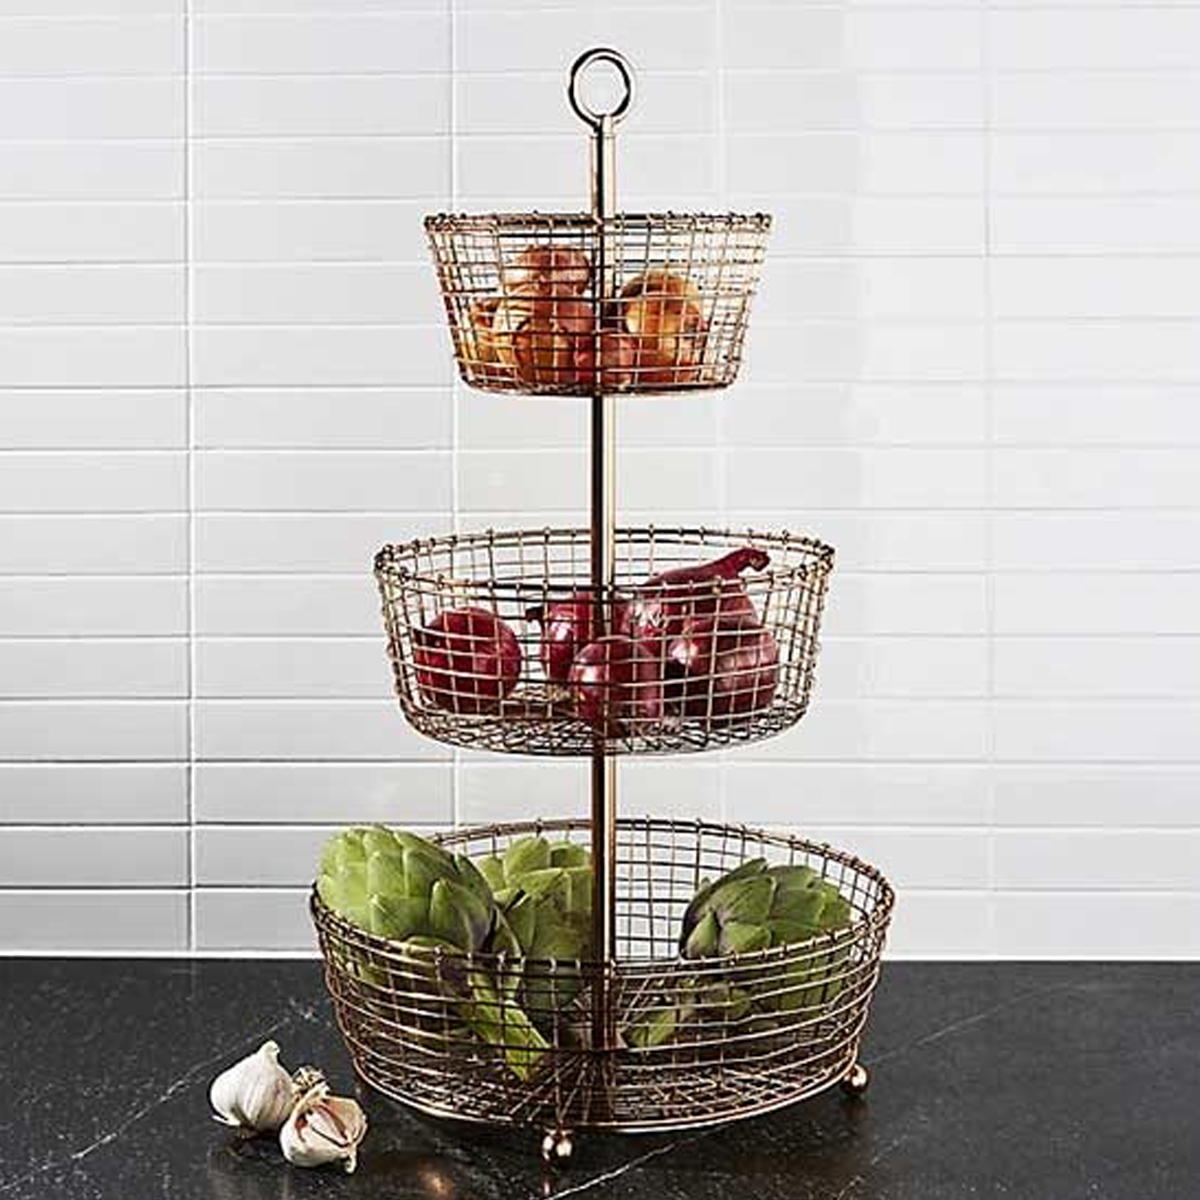 Sophisticated copper fruit holder with handcrafted iron-wire baskets. photo